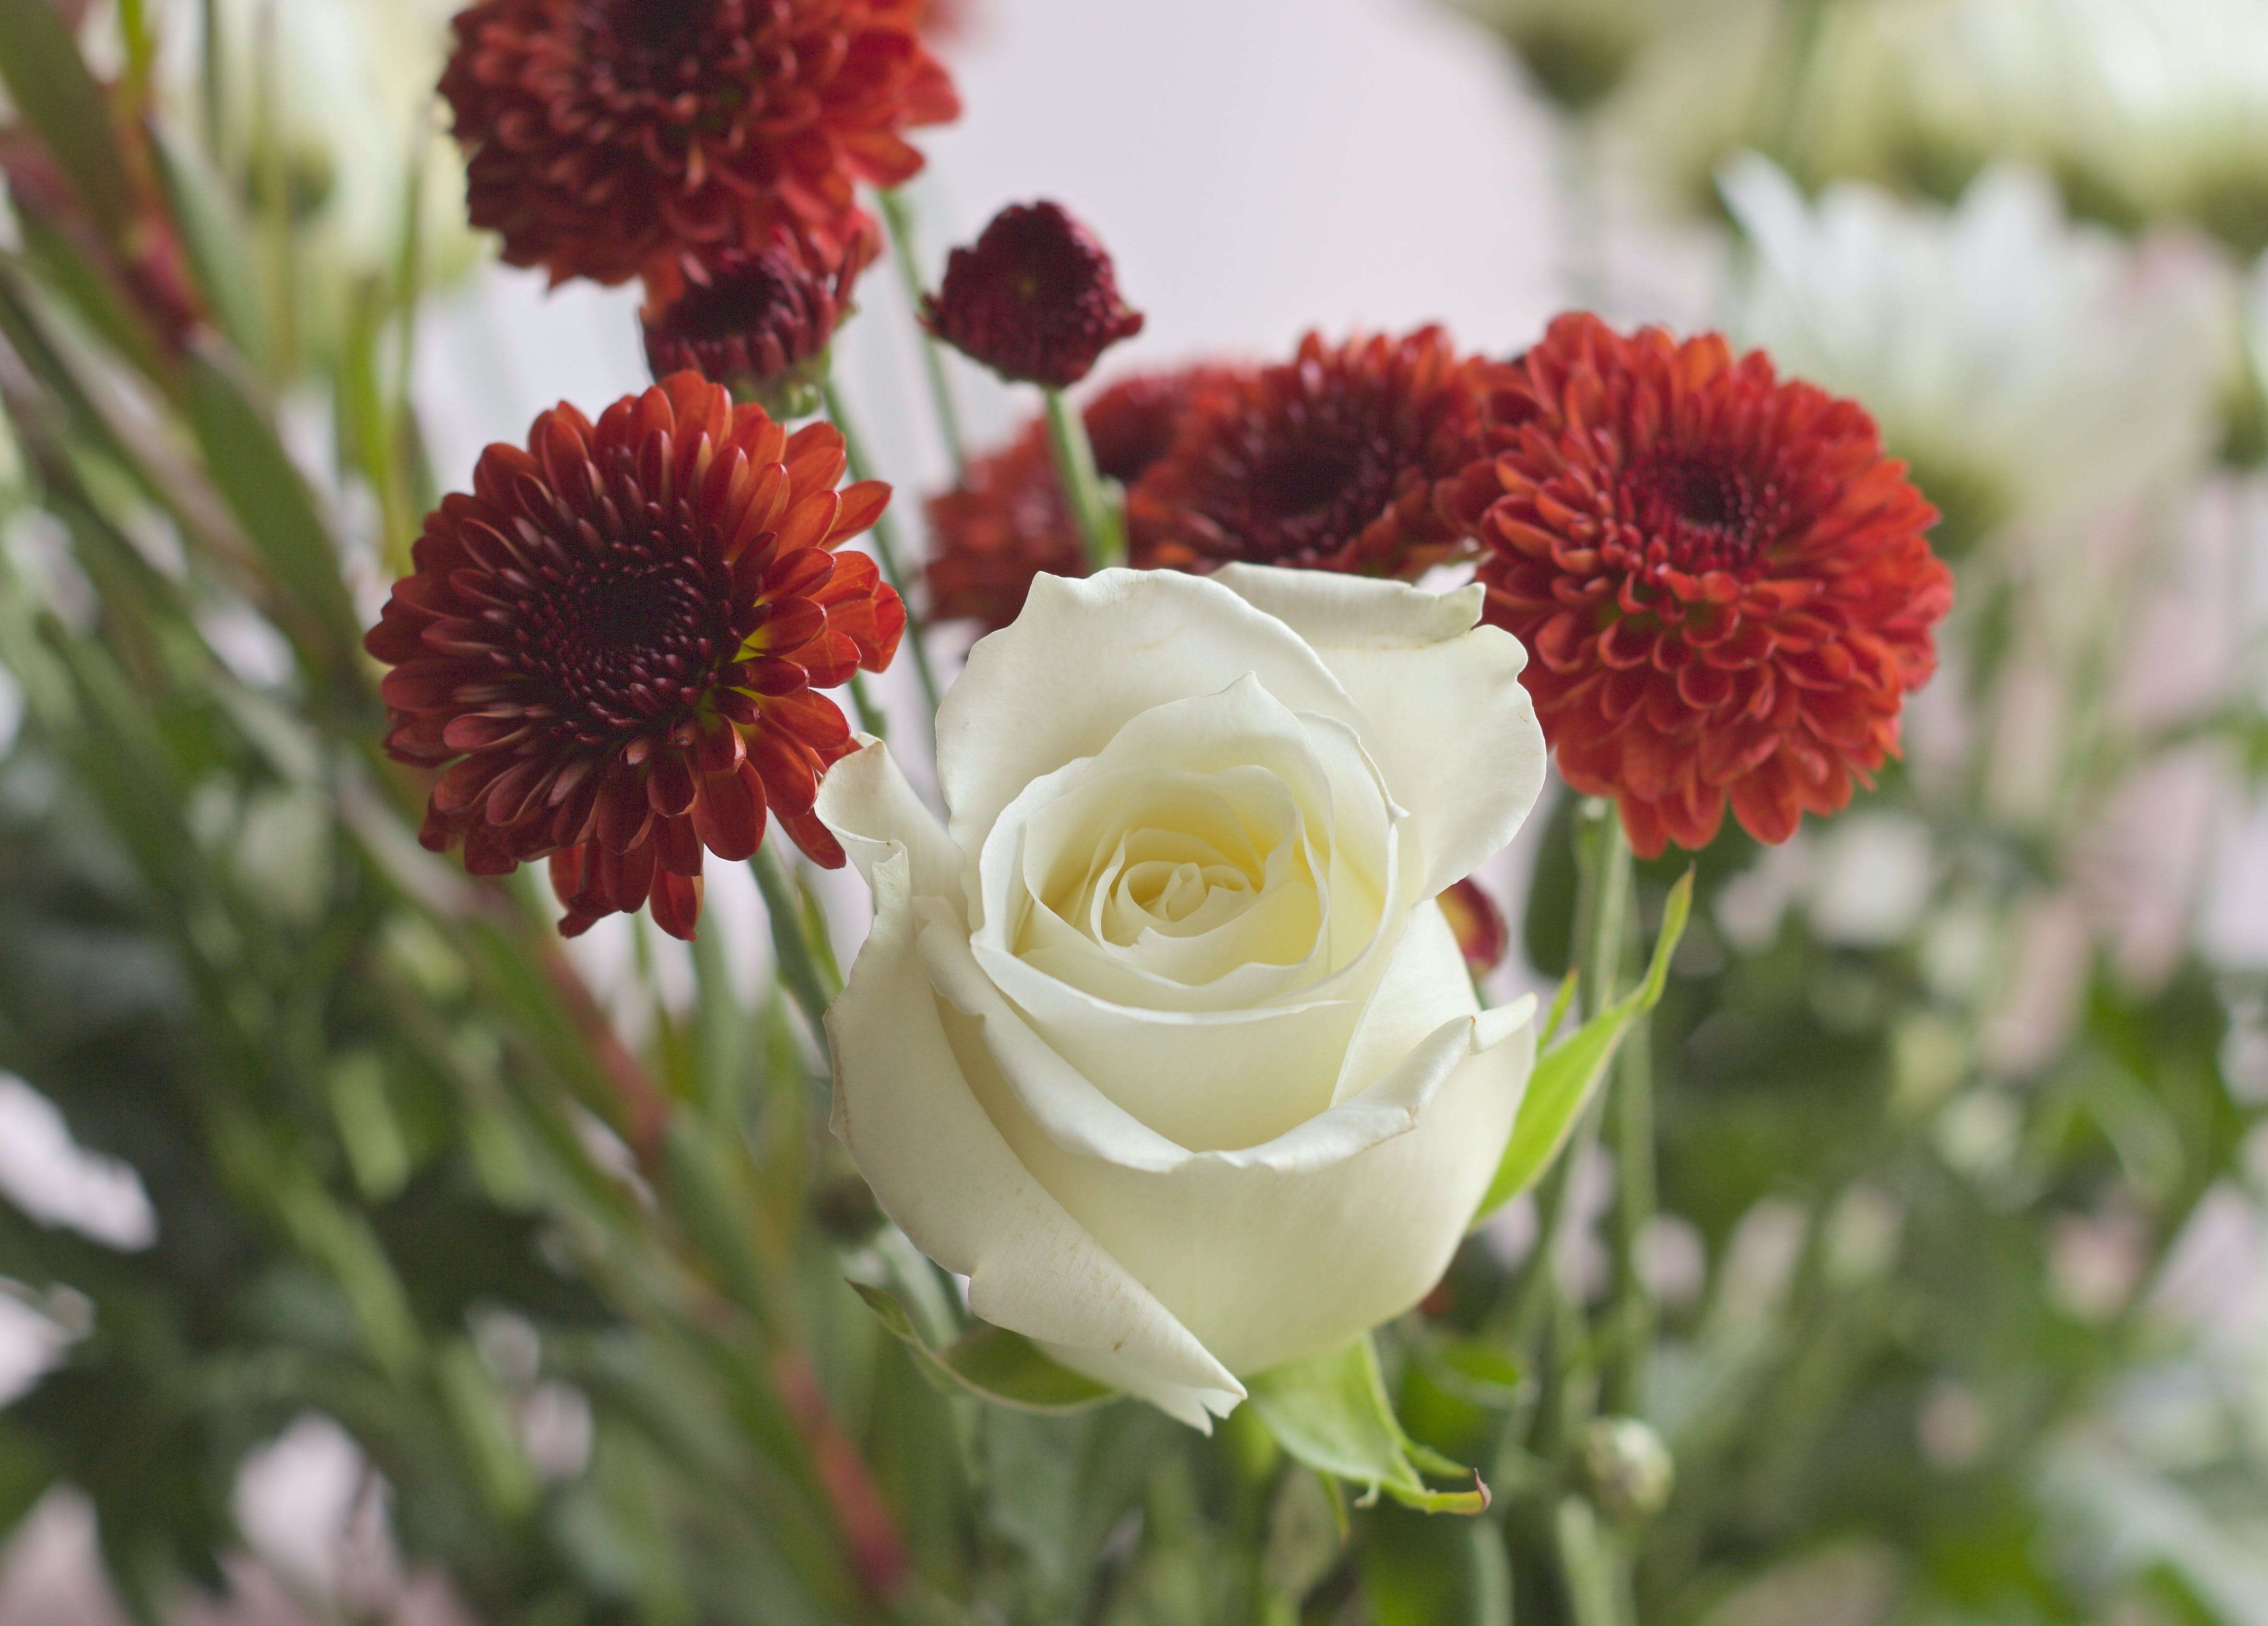 White Rose and Red Chrysanthemum Flowers